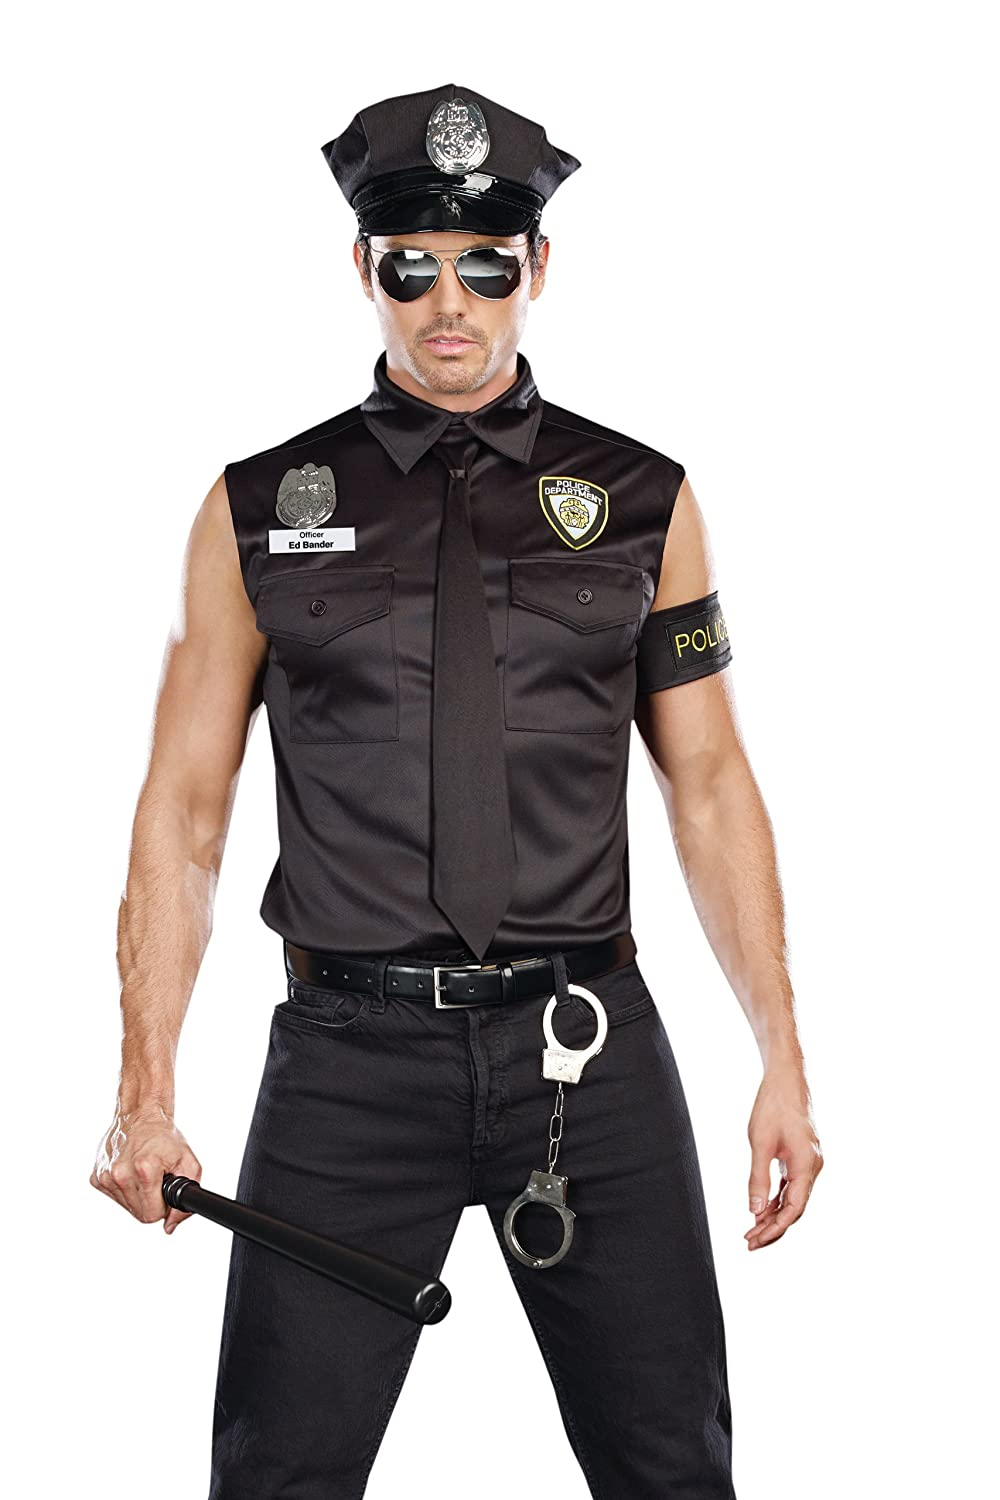 DreamGirl Men's Dirt Cop Officer Ed Banger Costume, Black, Large Dreamgirl Costumes 8817